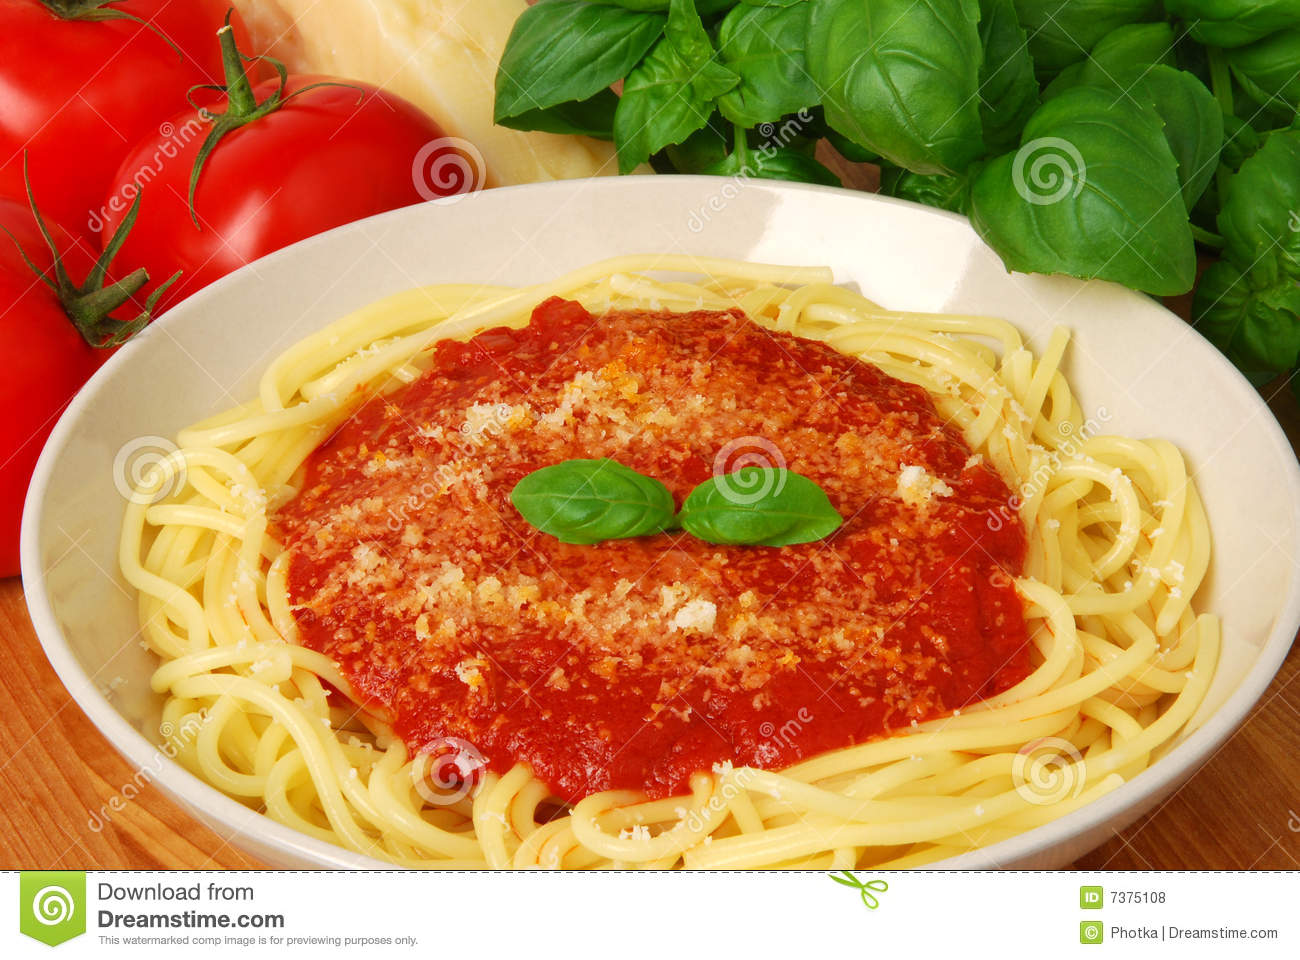 spaghetti with tomato saucem parmesan and fresh basil mr no pr no 0 ...